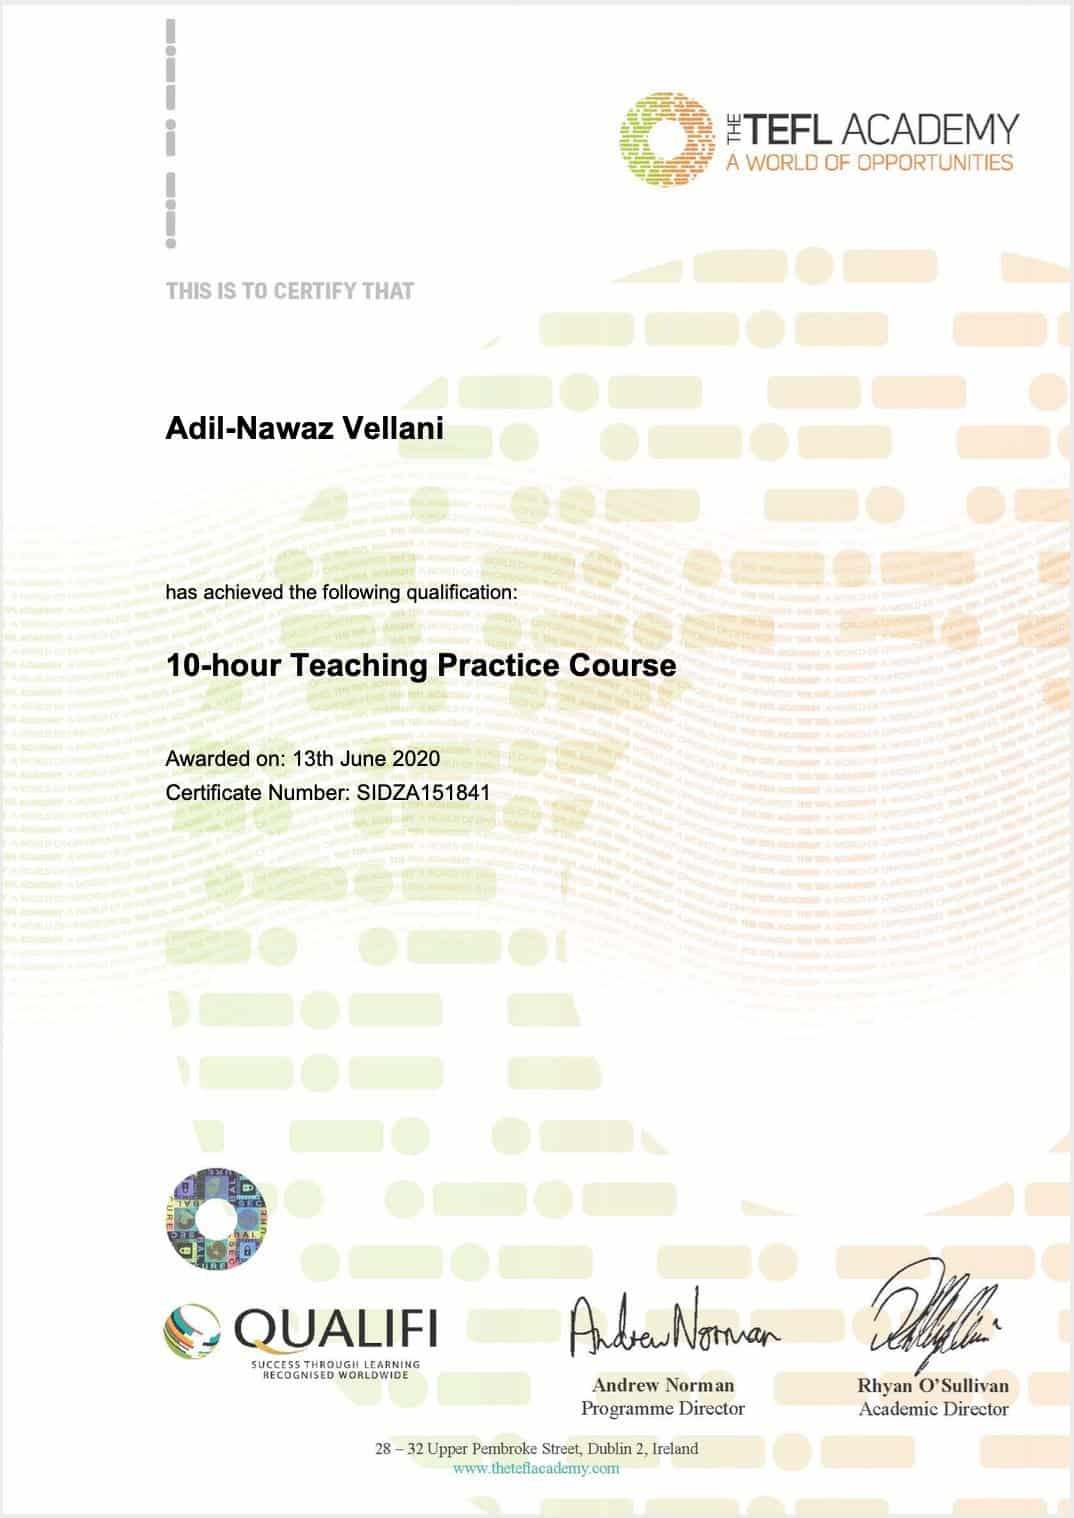 The Tefl Academy 10 Hour Teaching Practice